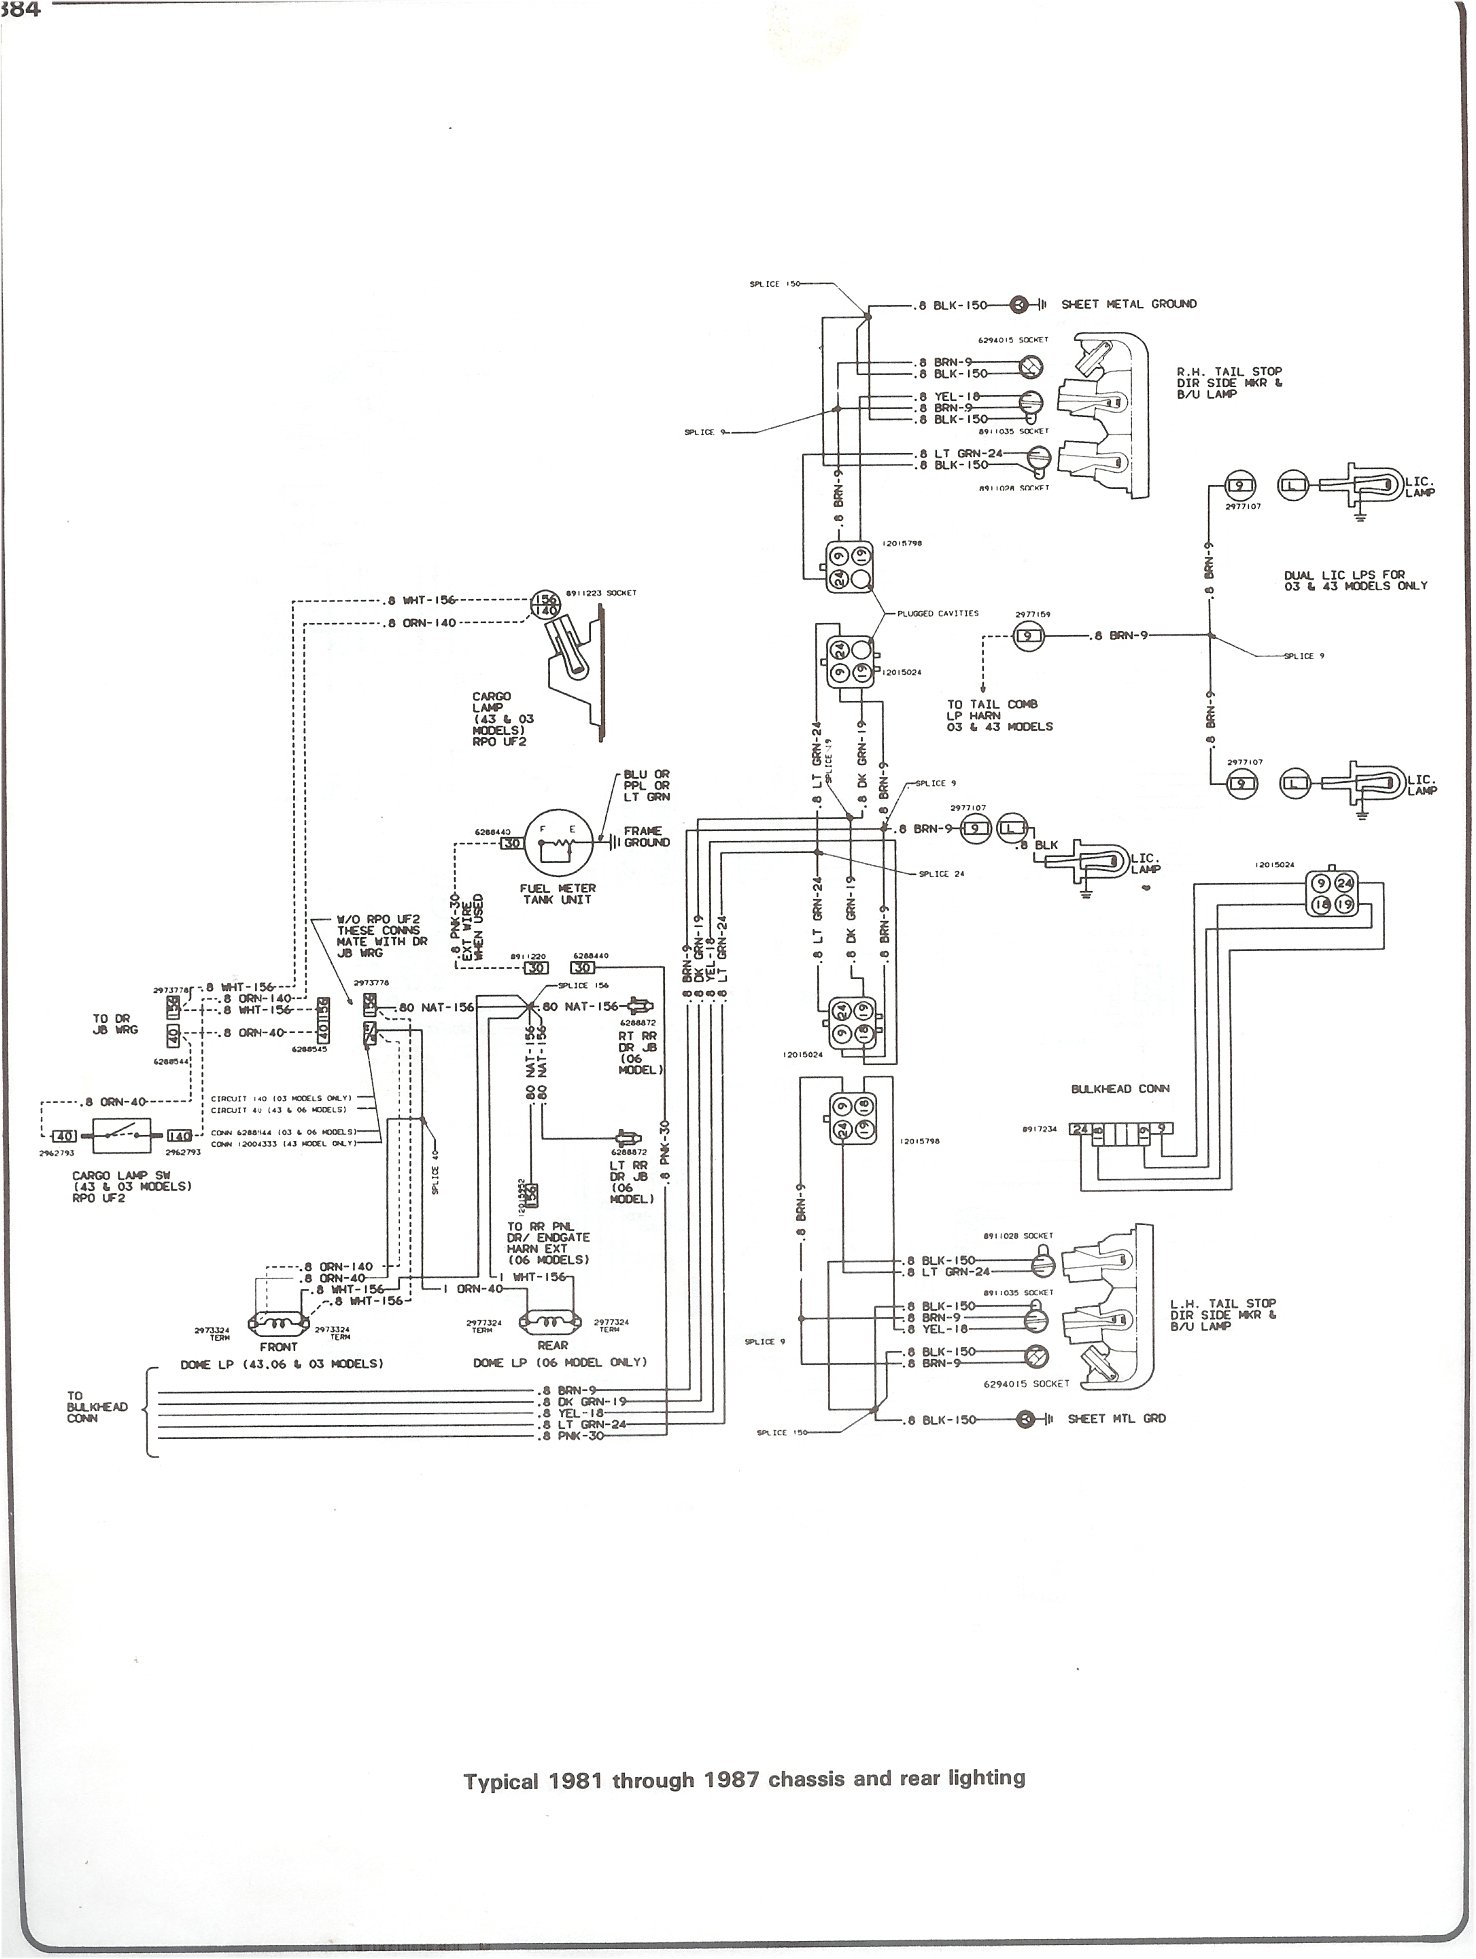 complete 73 87 wiring diagrams rh forum 73 87chevytrucks com 1959 Chevy Impala Wiring Diagram Chevy Fuel Pump Wiring Diagram